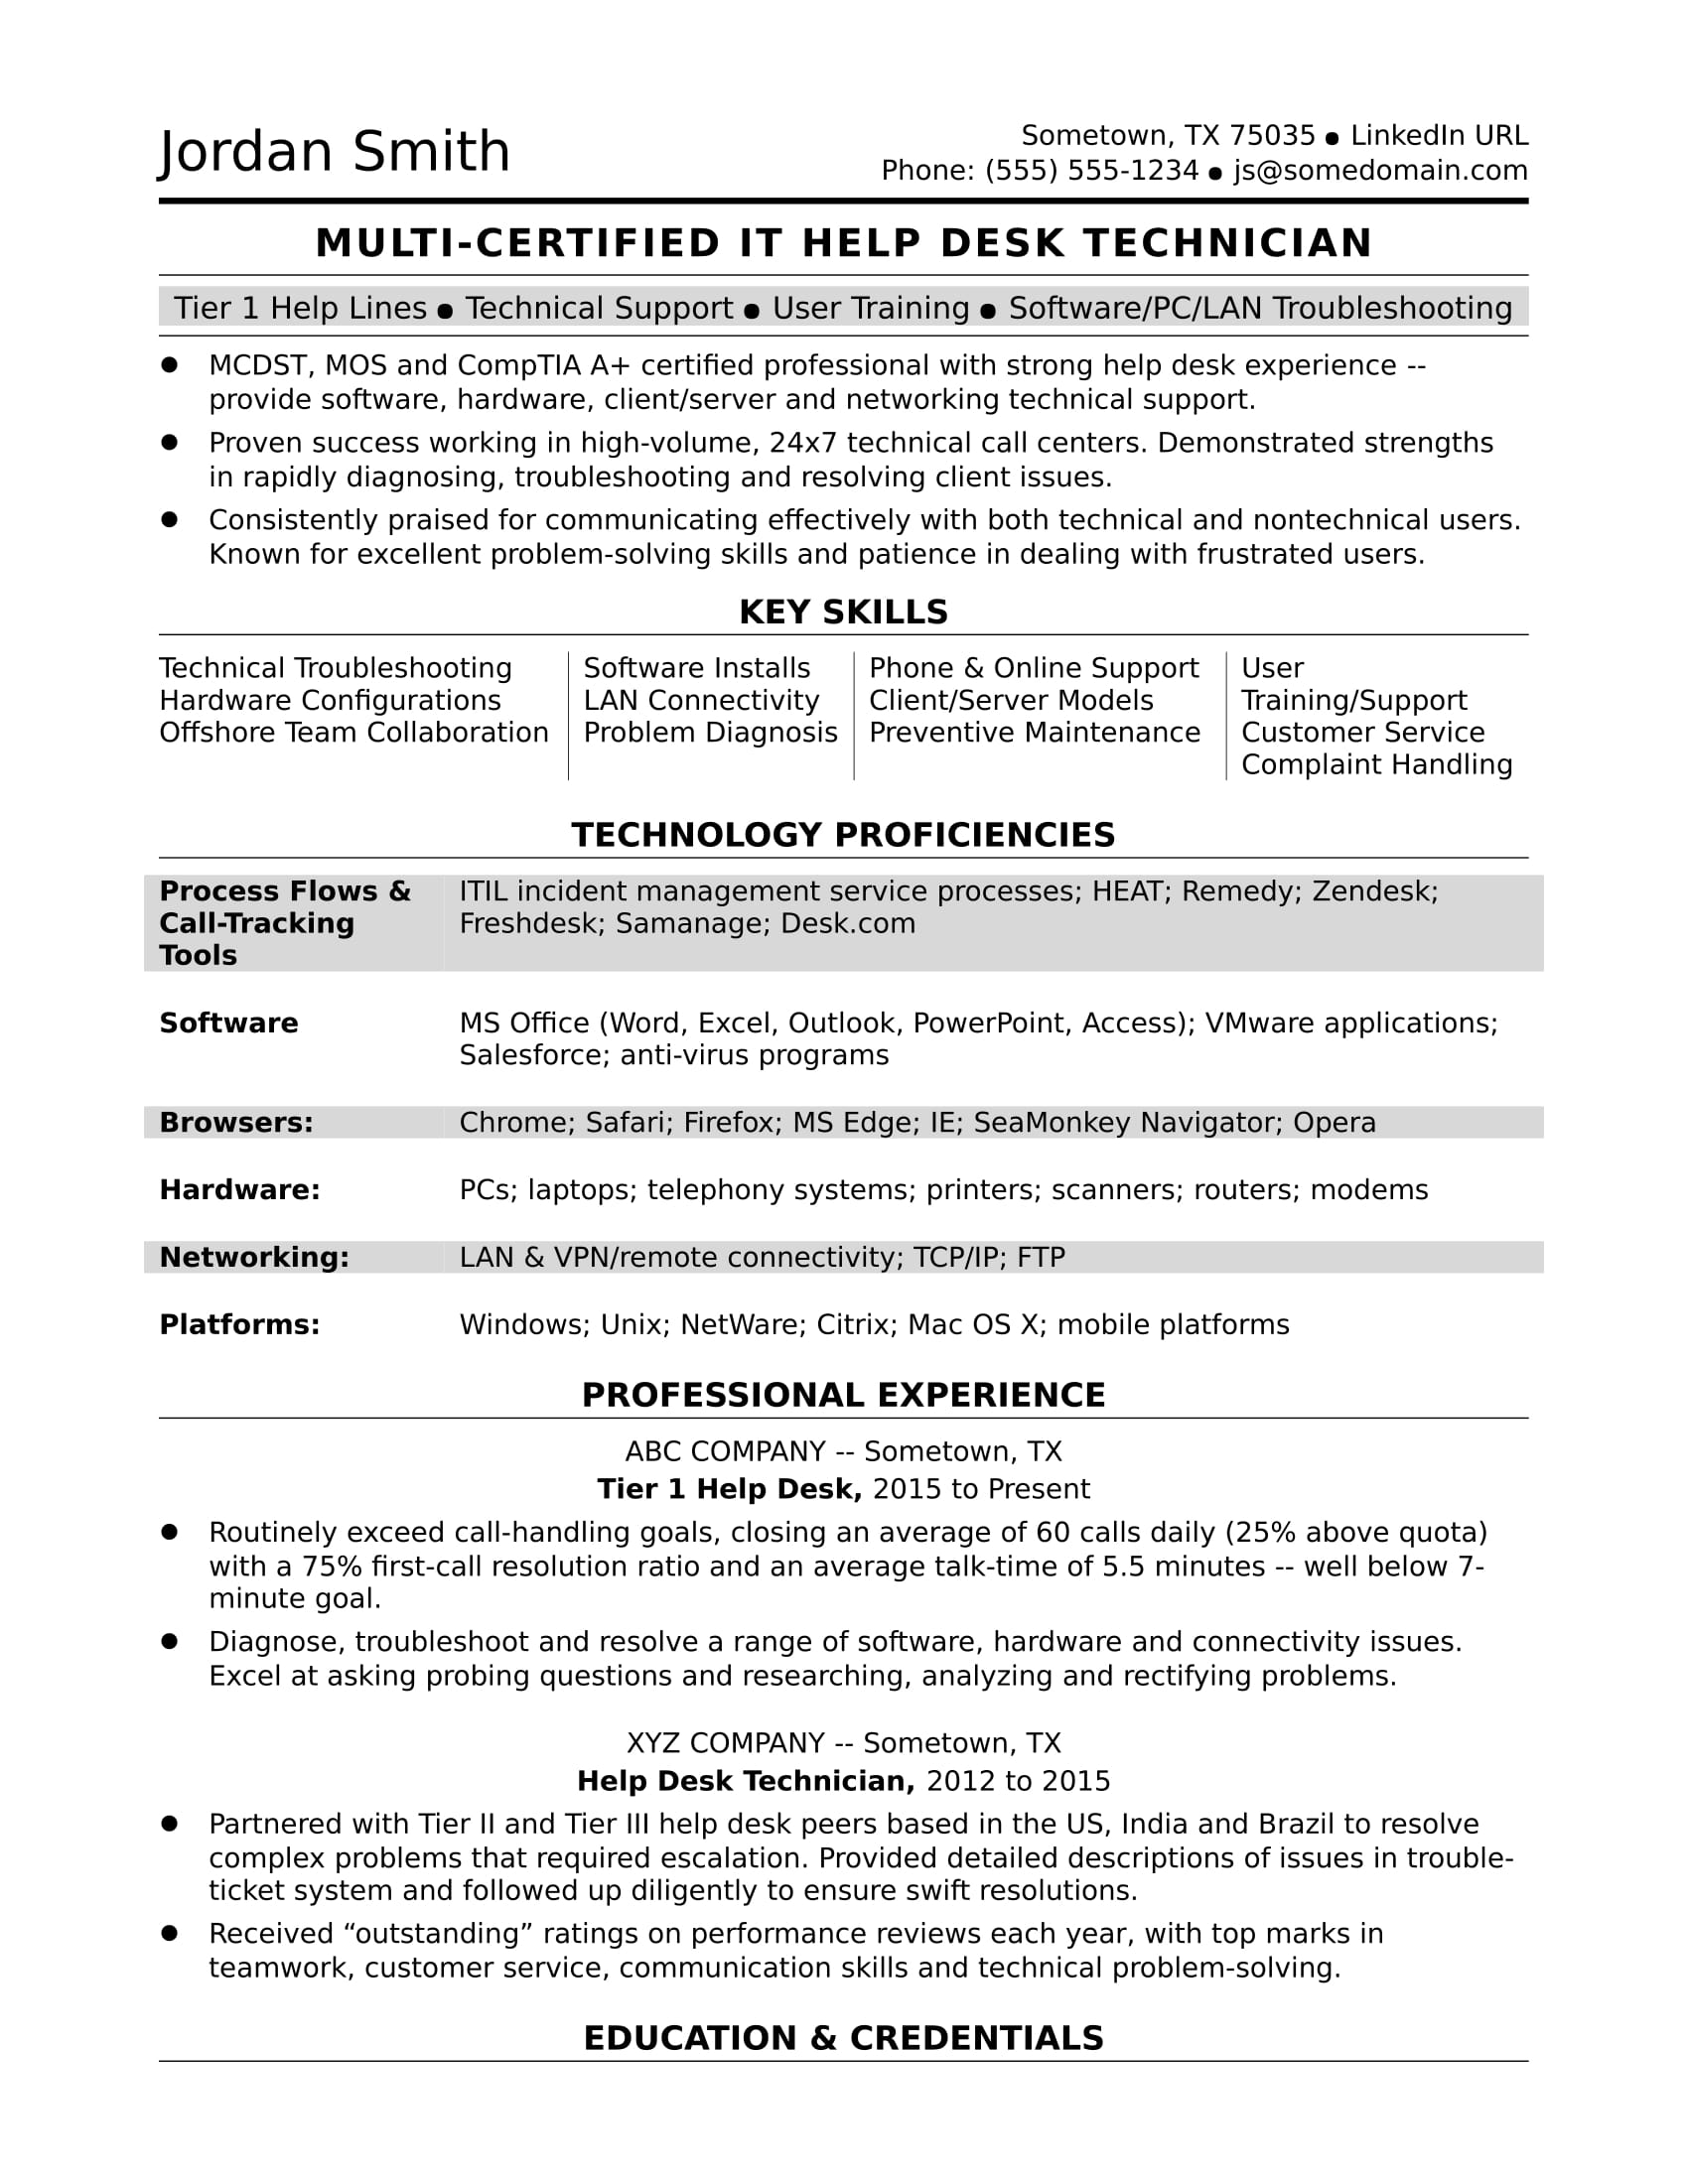 S le Resume It Help Desk Midlevel on profile writing examples